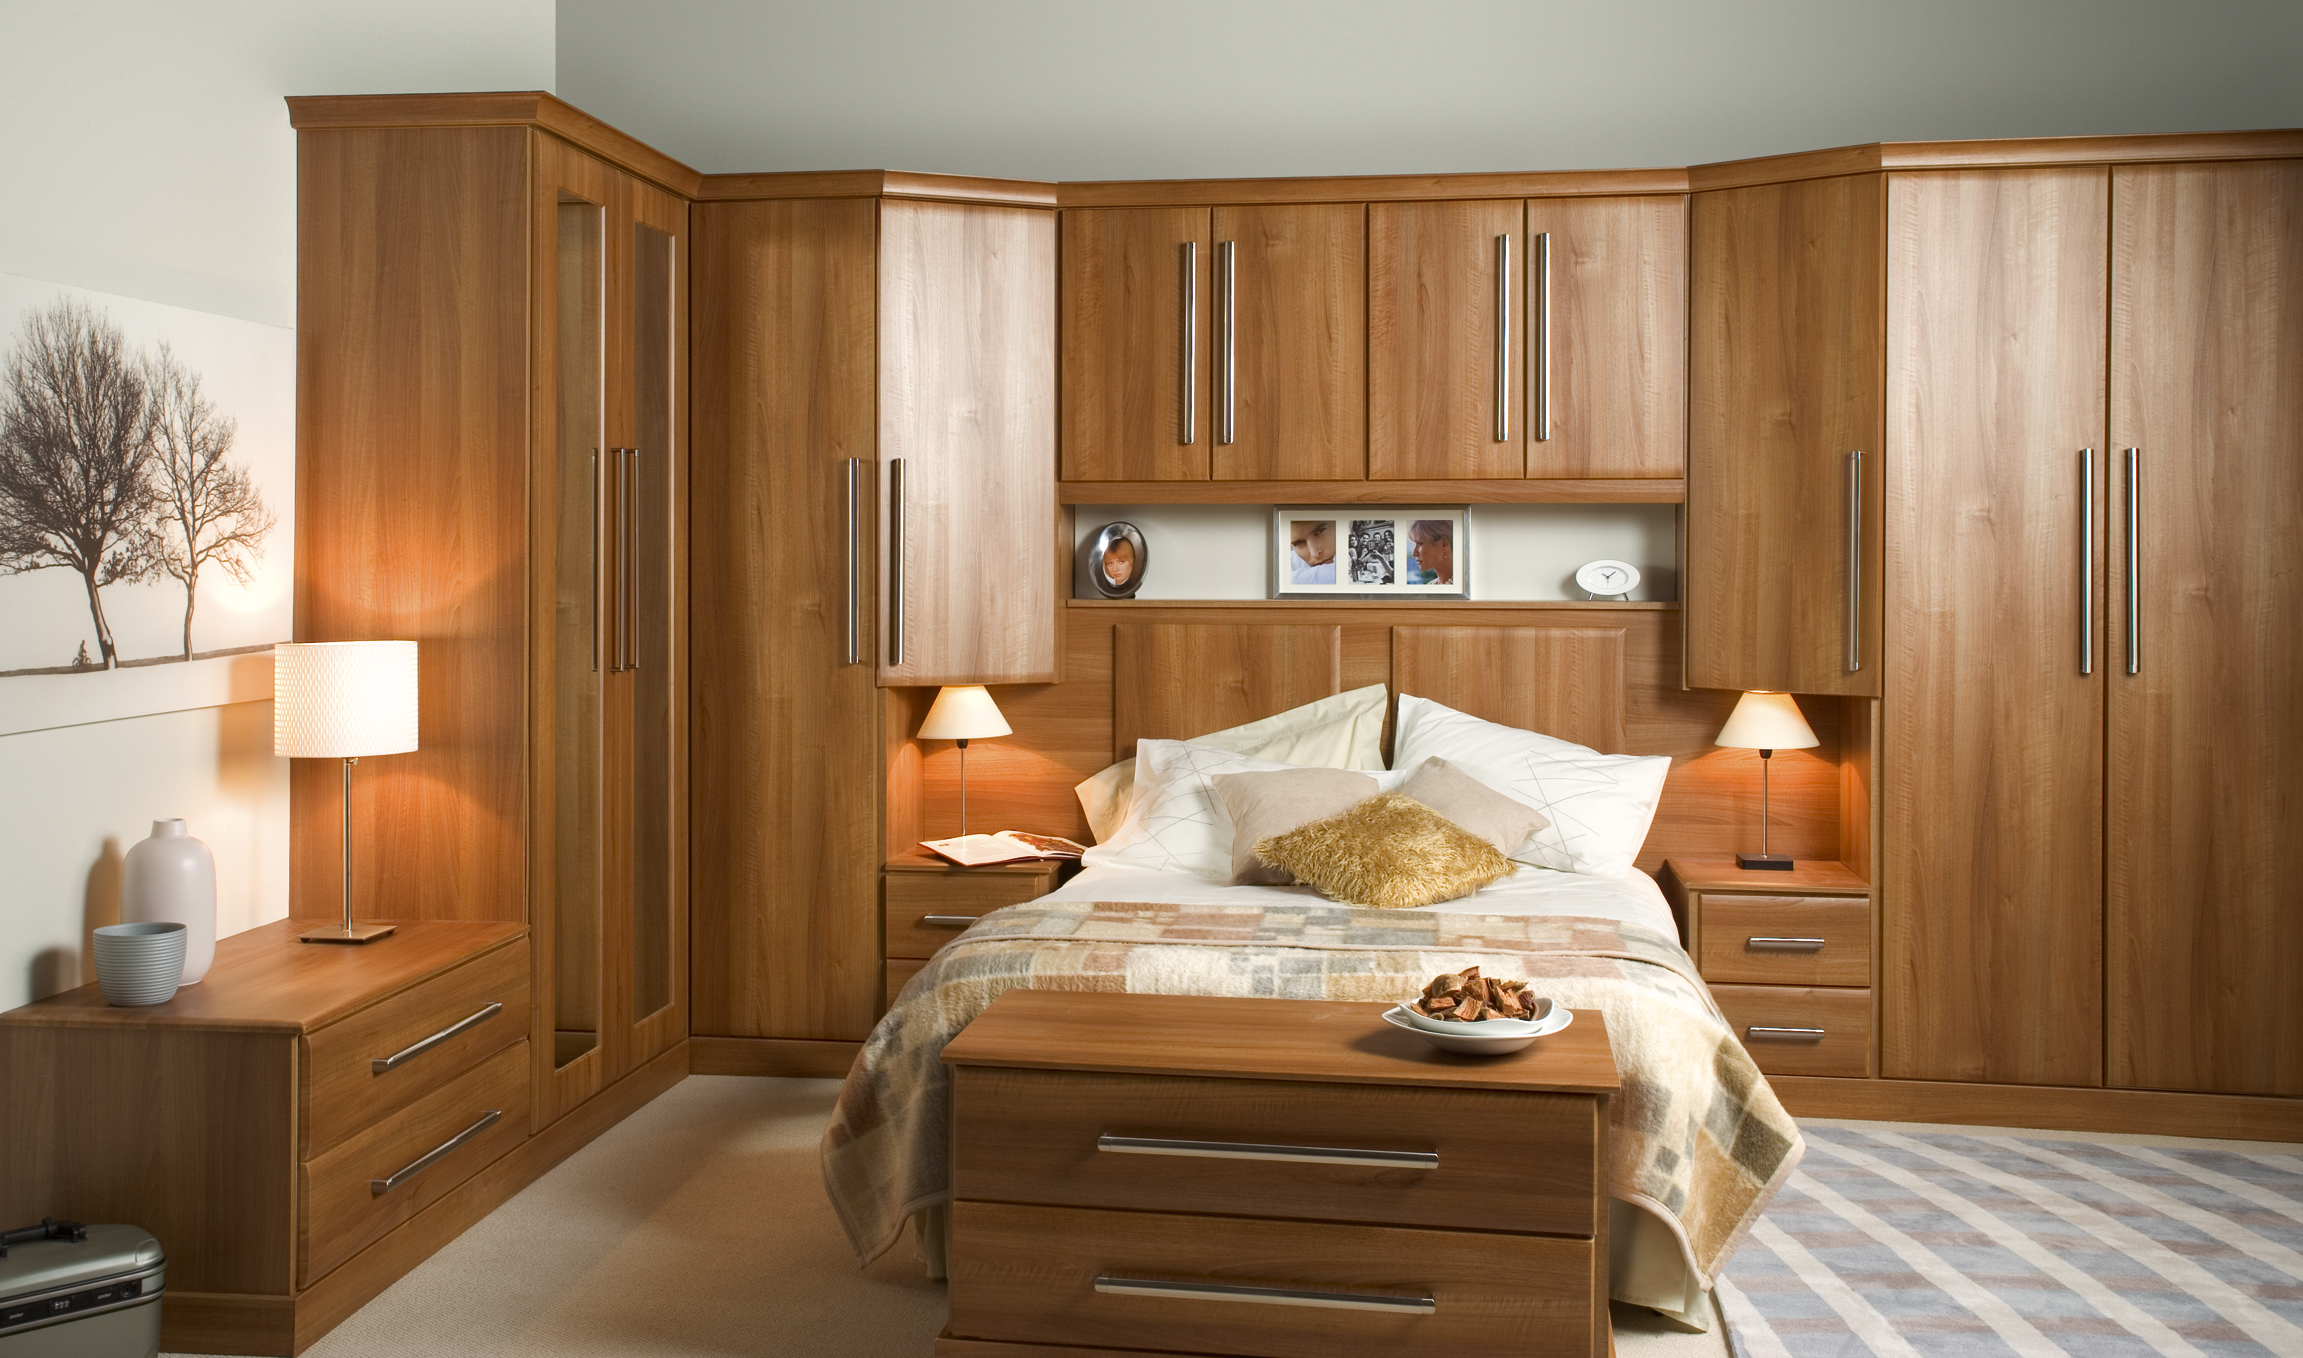 Clarke interiors fitted bedrooms - Bedrooms images ...